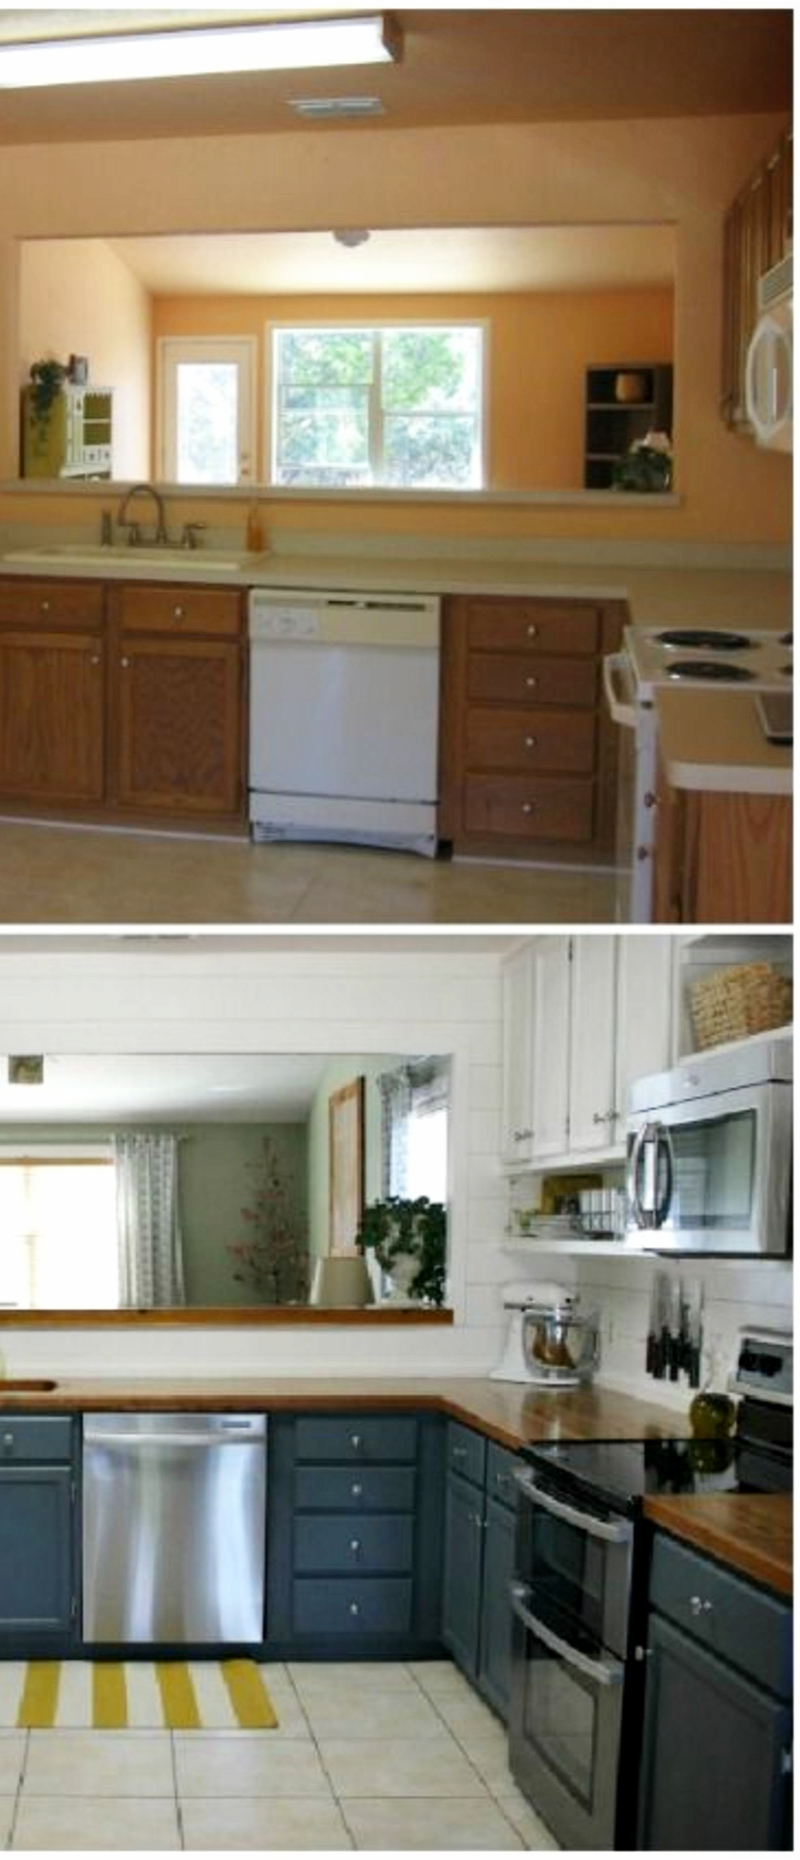 Small kitchen remodel - before and after pictures of small kitchen makeovers #kitchenideas #farmhousedecor #kitchendecor #kitchenremodel #diyhomedecor #homedecorideas #farmhousekitchen